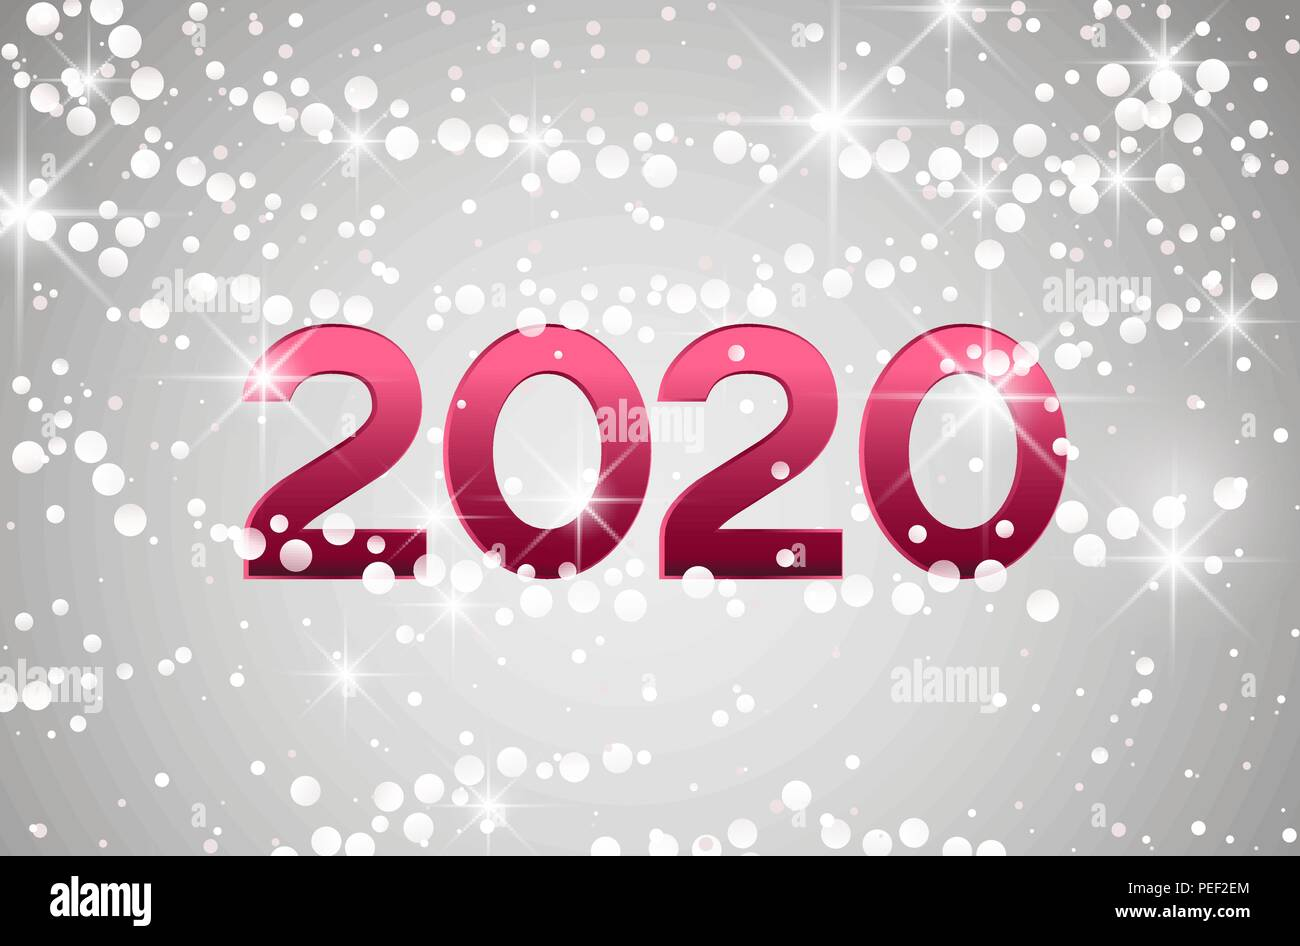 Merry Christmas Images 2020.Merry Christmas Card 2020 Happy New Year Background String